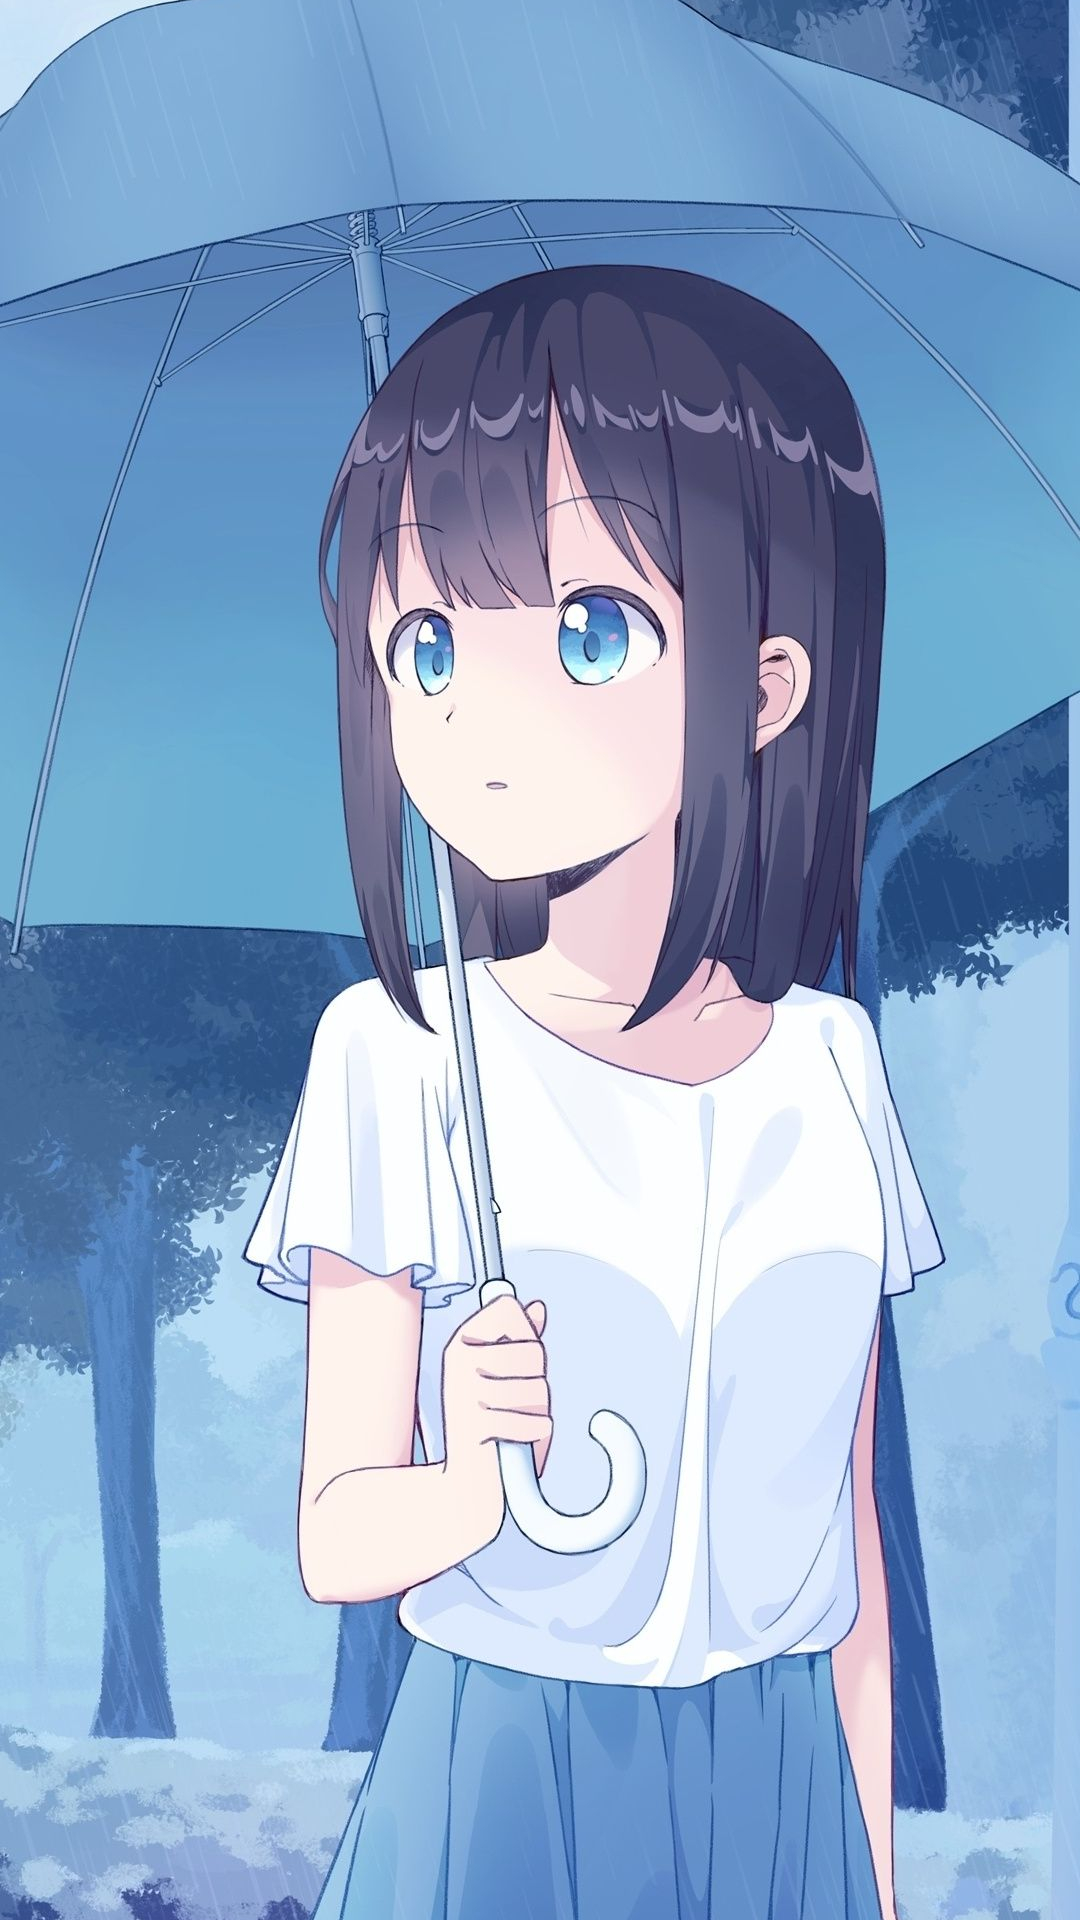 Free Download Anime Girl Cute With Umbrella Art 1080x2160 Wallpaper Anime 1080x2160 For Your Desktop Mobile Tablet Explore 38 Anime Girl 2019 Wallpapers Anime Girl 2019 Wallpapers Anime Girl Wallpaper Girl Anime Wallpaper